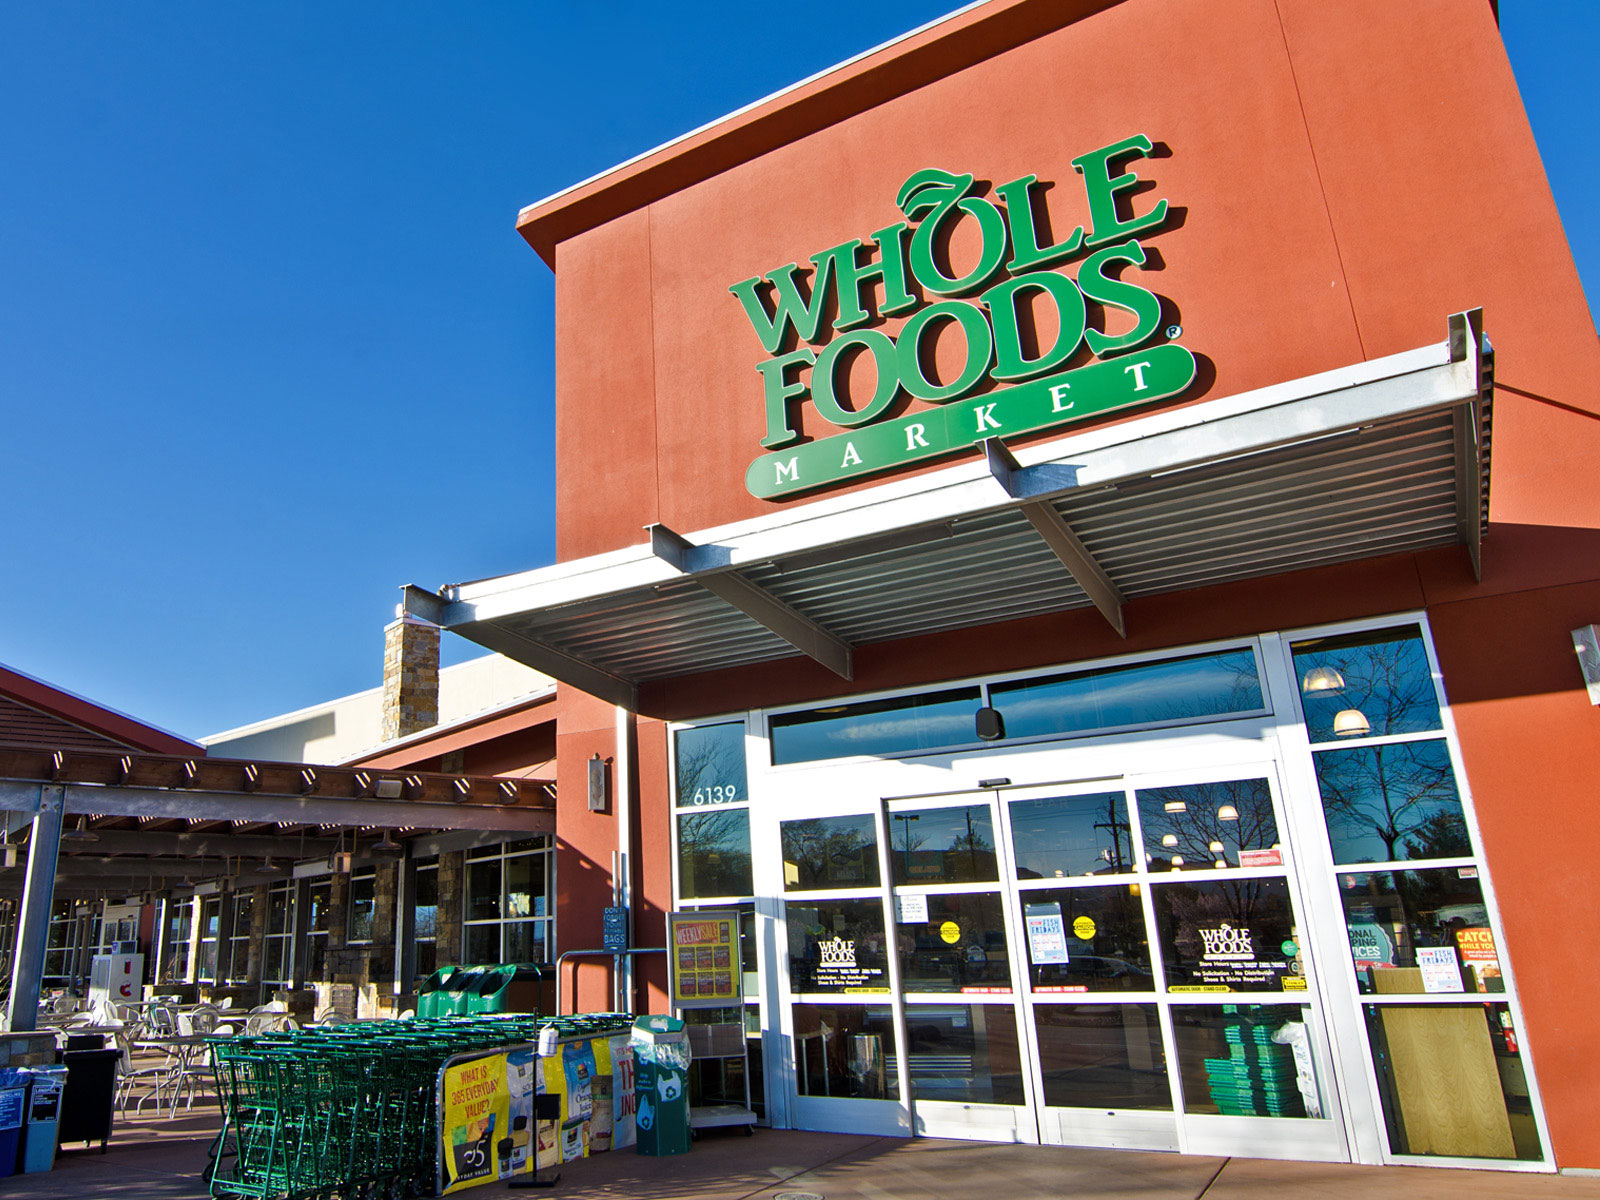 whole foods exterior shot